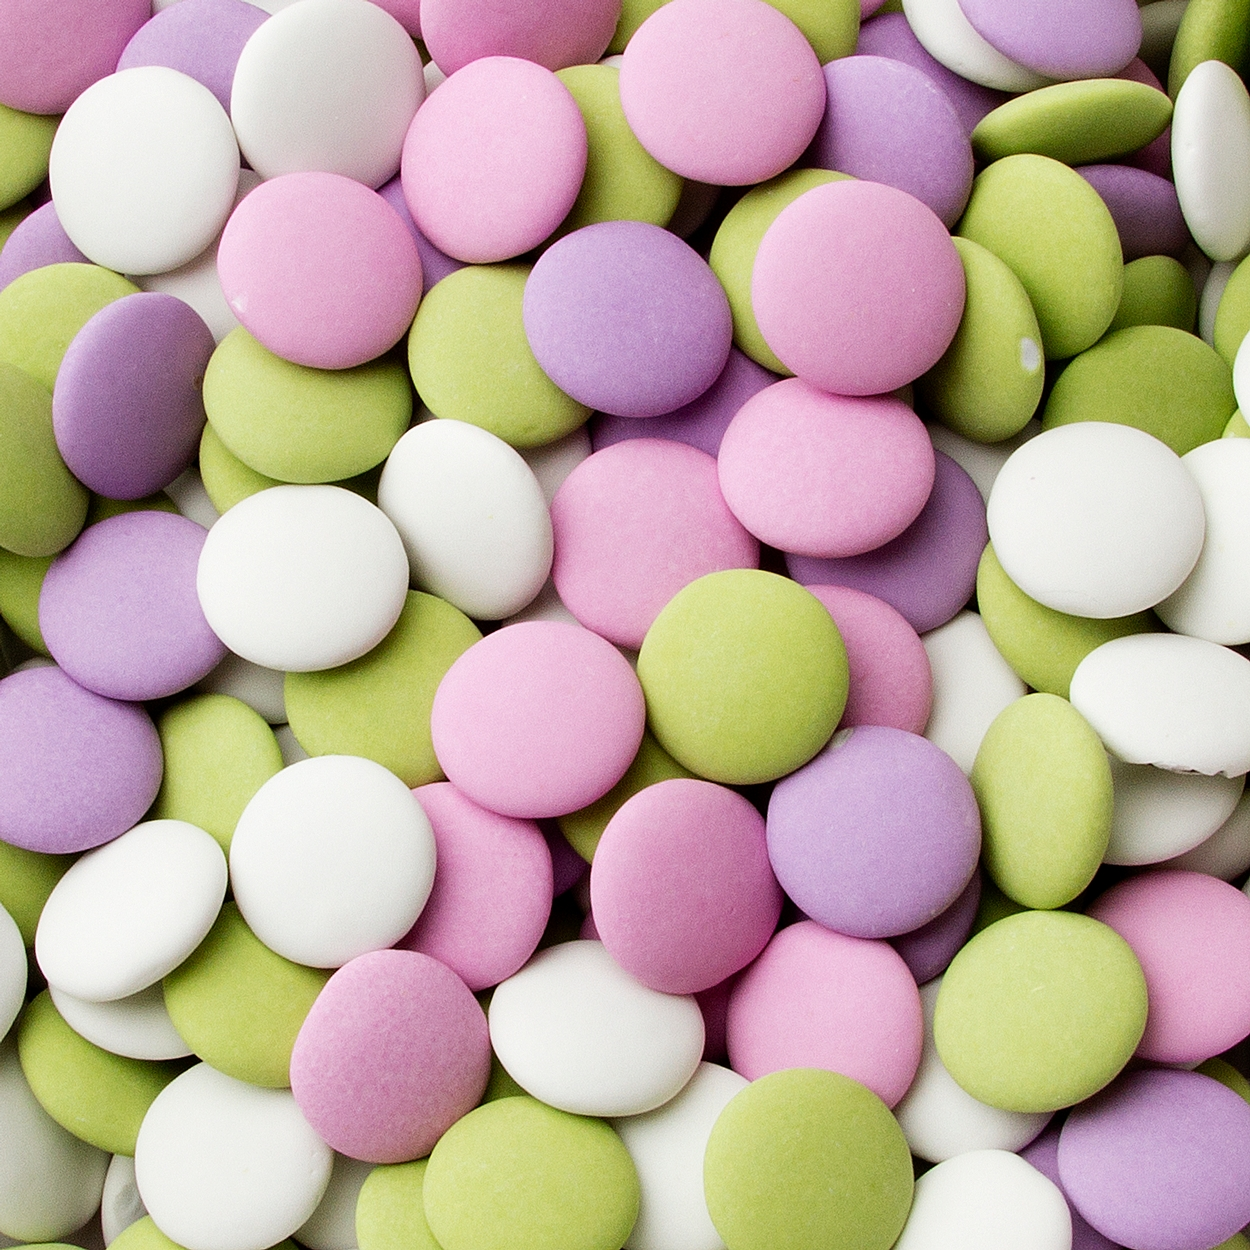 Pastel Mint Chocolate Lentil Candies in Bulk • Oh! Nuts®